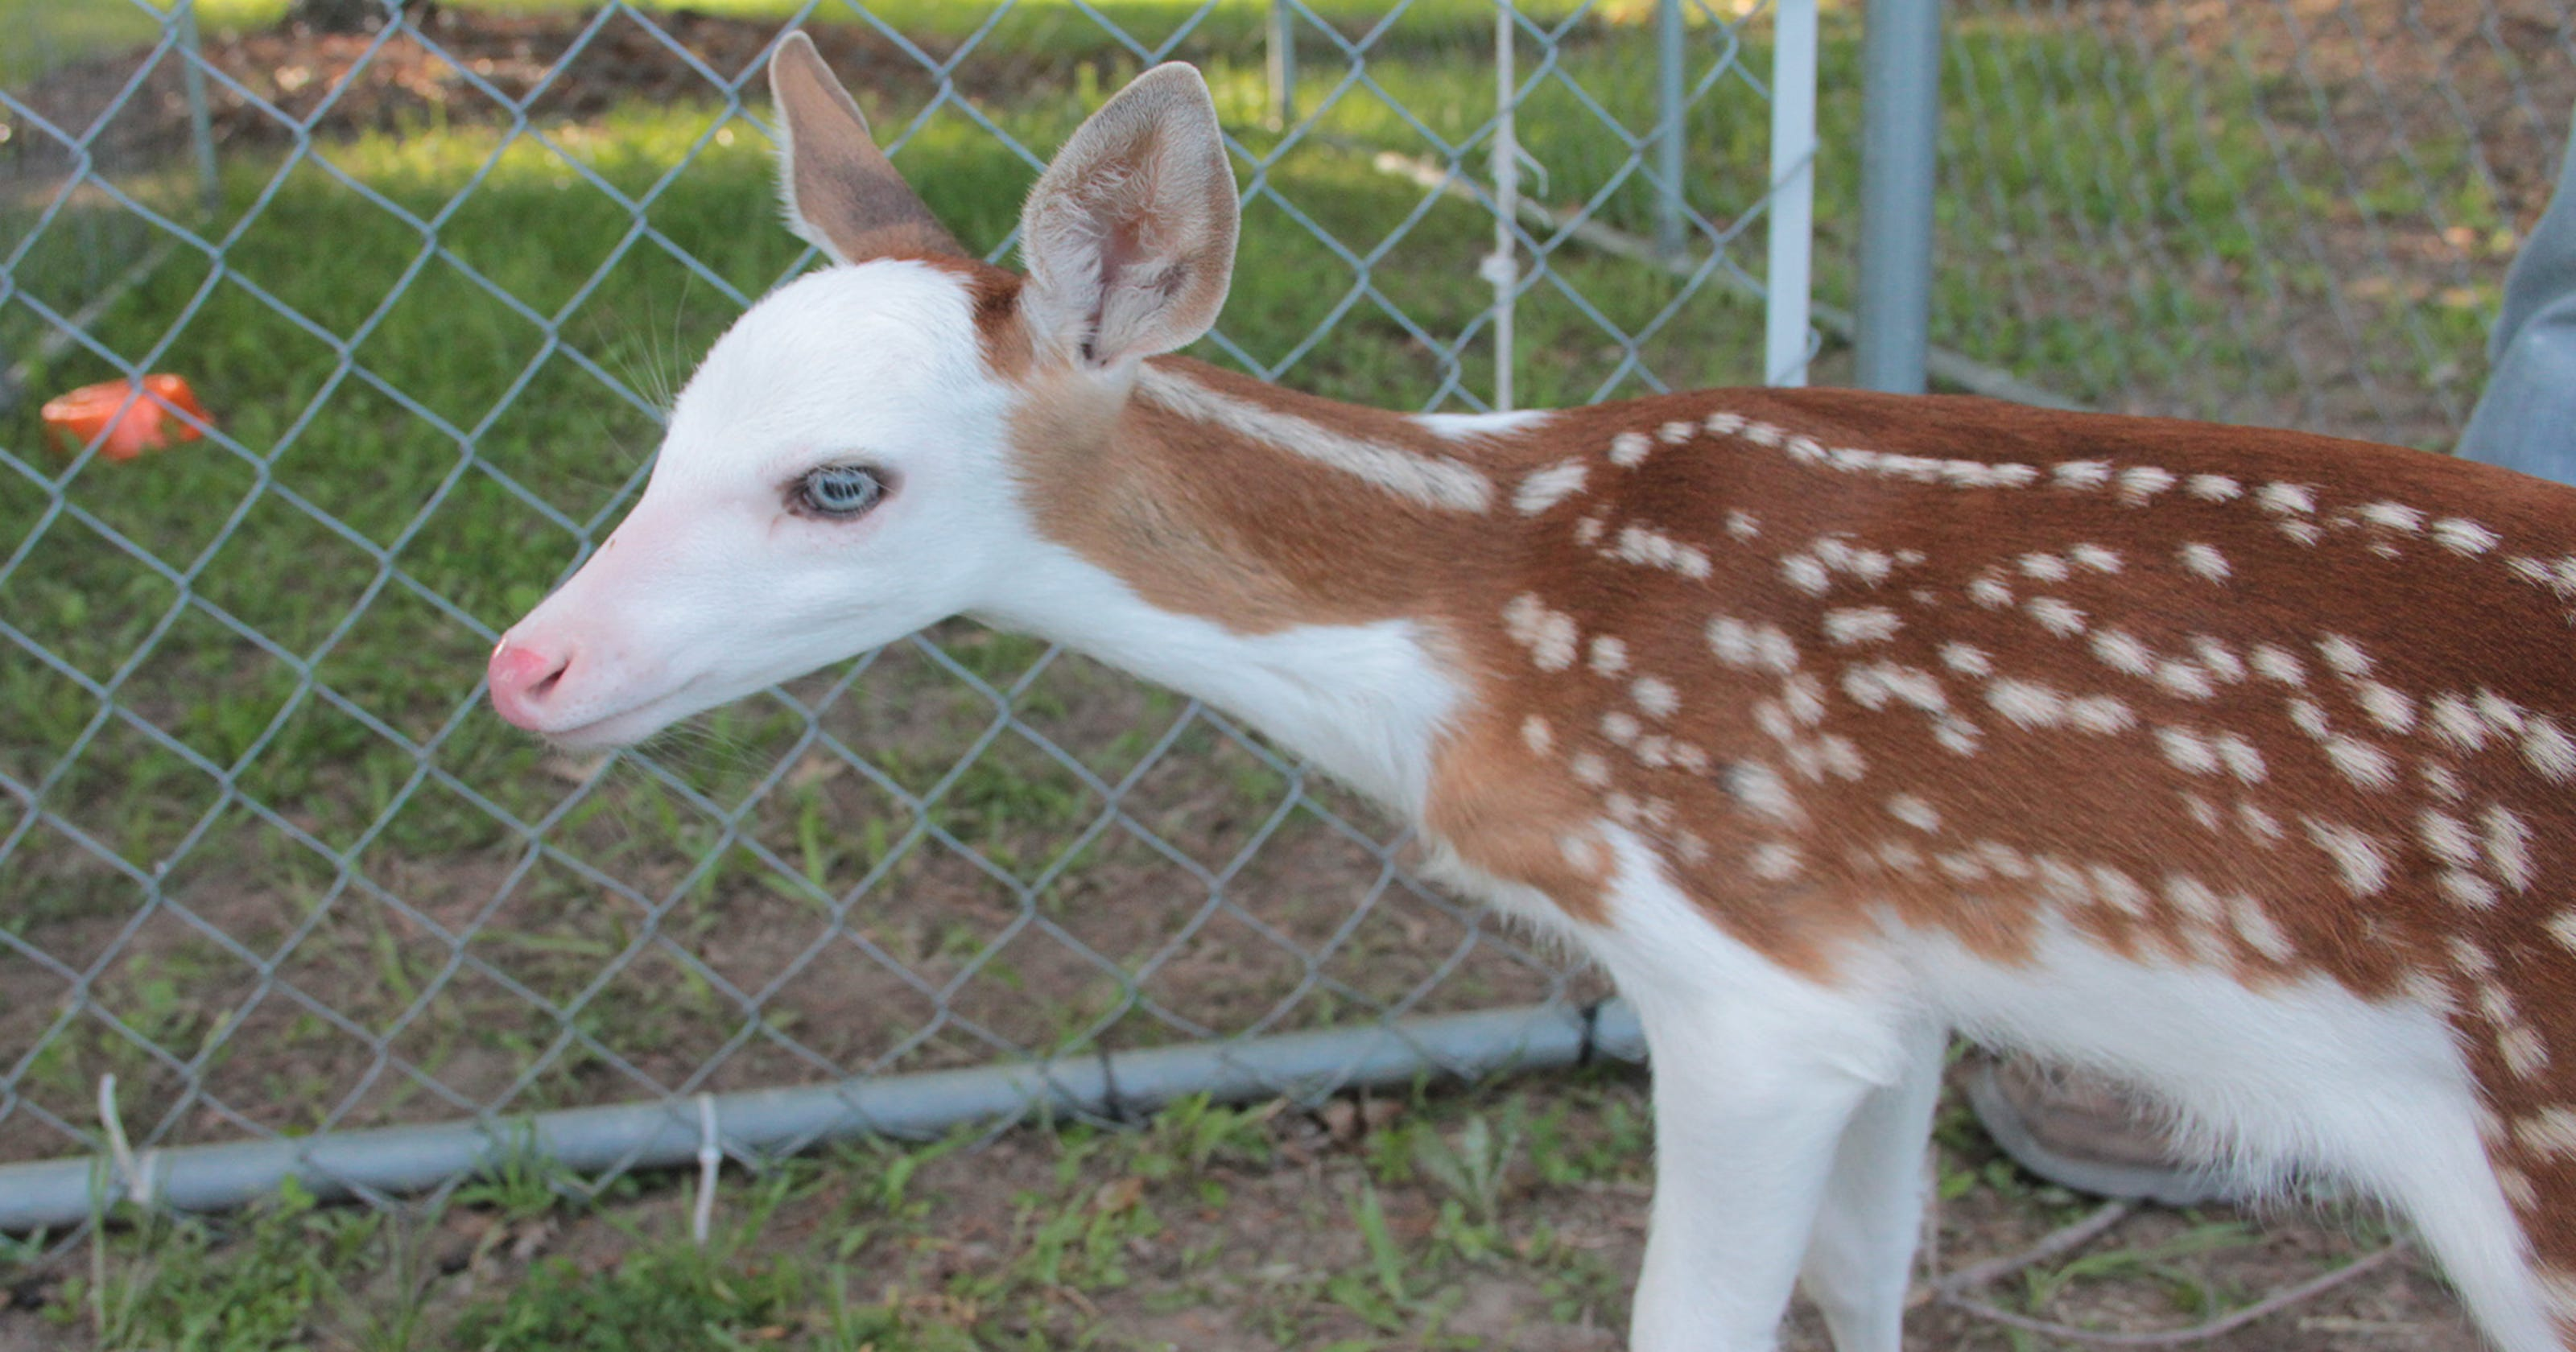 Sanctuary Saves Rare Fawn That Its Mom Tried To Kill